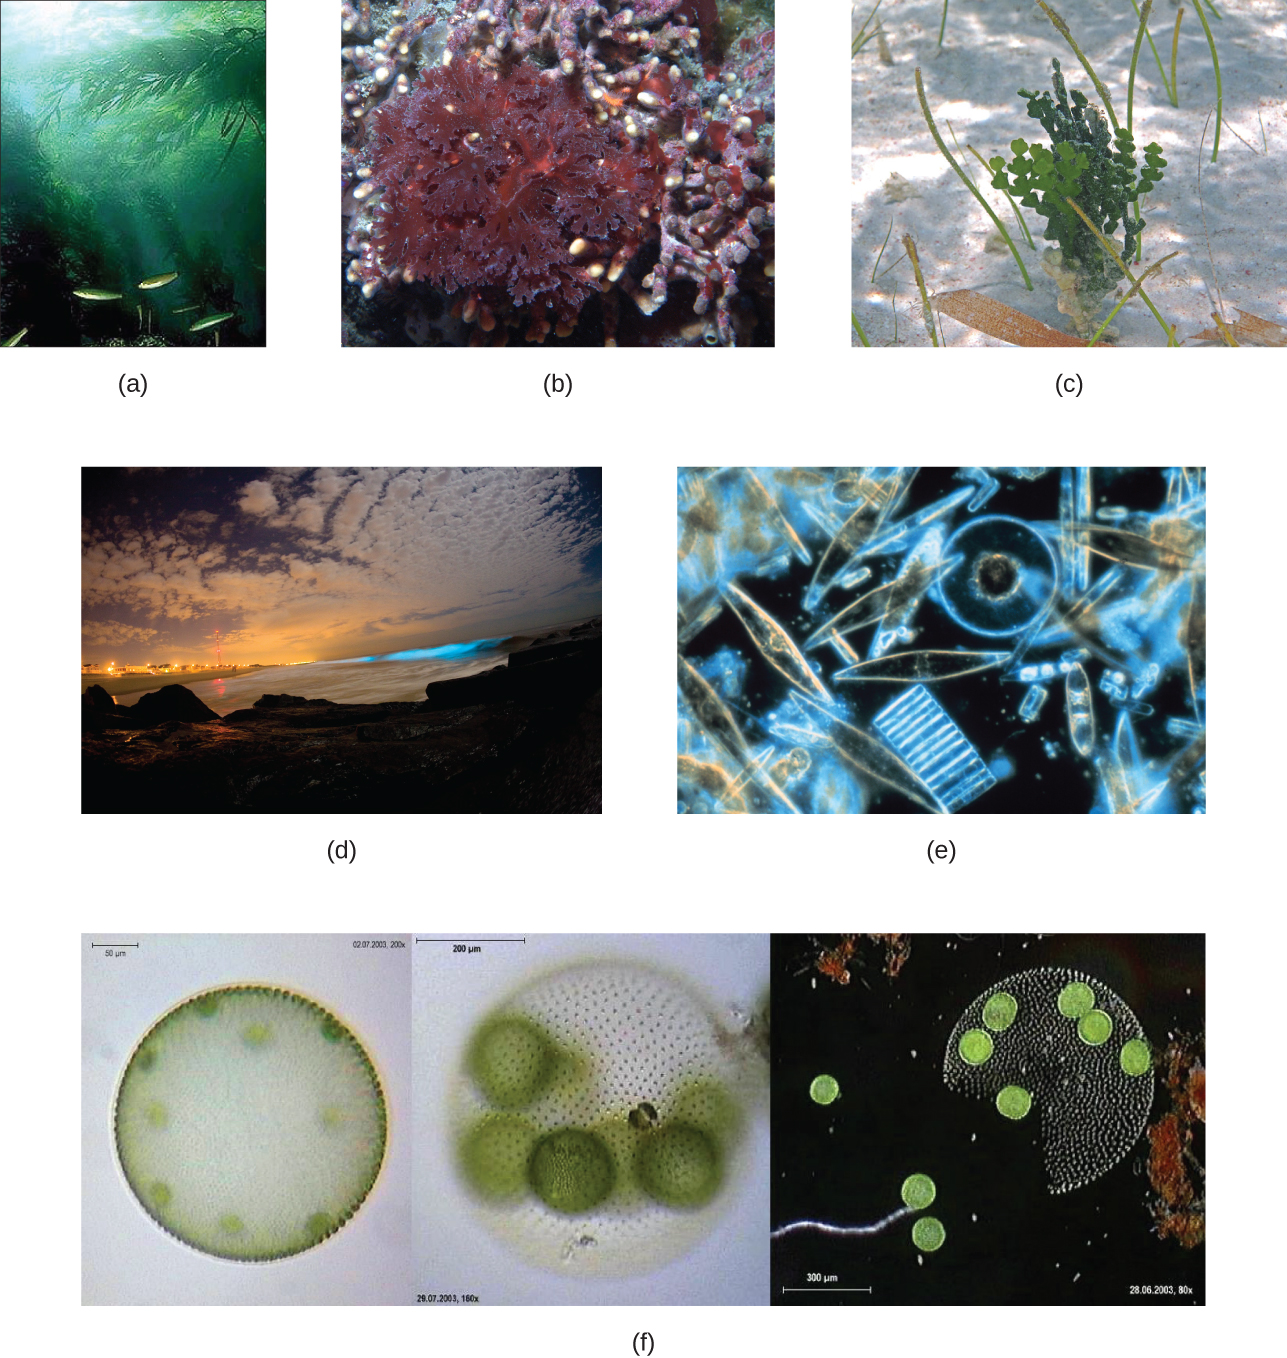 a) A photograph of long green kelp in the ocean b) A photograph of a red leafy structure. C) A photograph of a green leafy structure. D) a photograph of lighted regions of a waterway. E) A micrograph of cells of various shapes that look like they are made out of glass. F) a micrograph of a sphere made of many greed dots. Smaller greens spheres can be seen inside the larger sphere. The smaller spheres are released when the larger one ruptures.